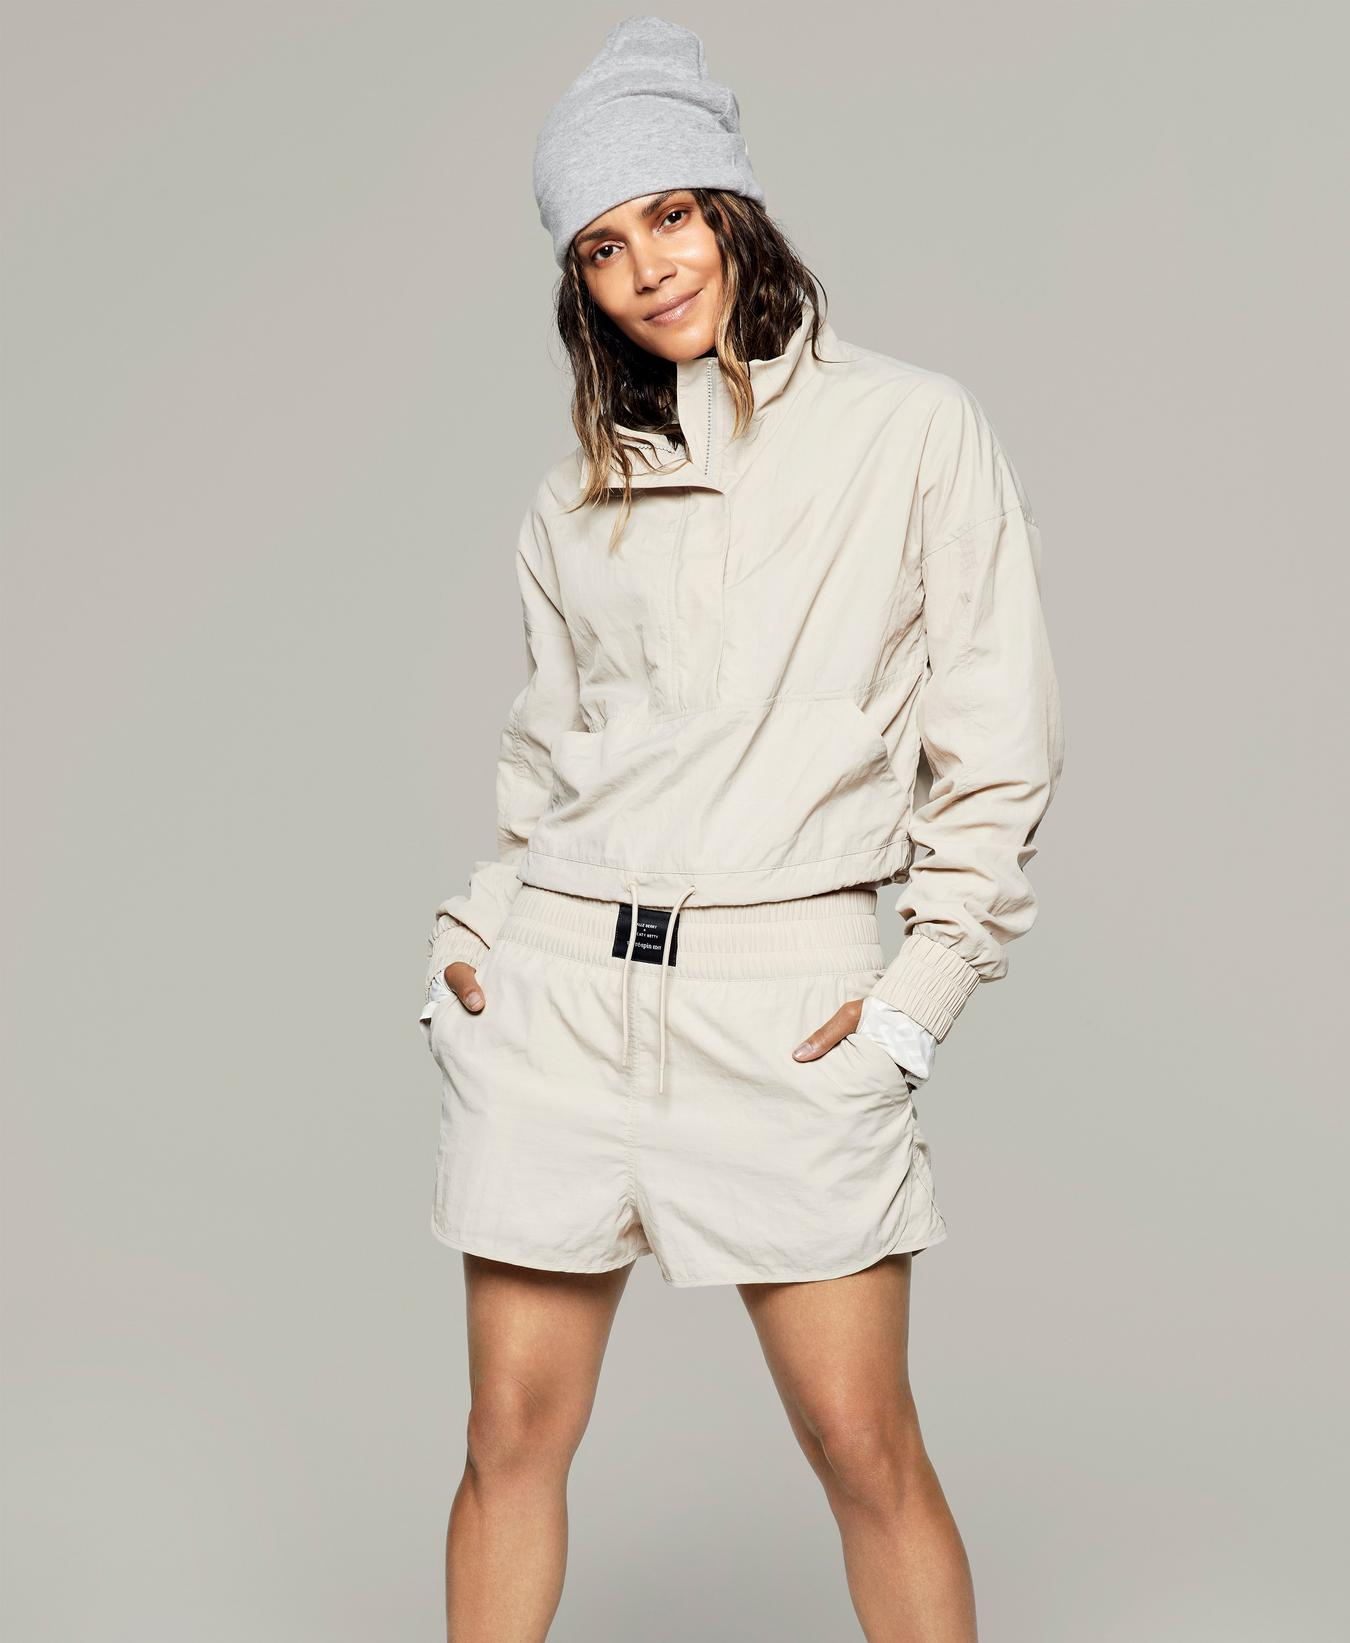 Halle Berry x Sweaty Betty Leticia Woven Track Top Water Resistant Jacket Beige